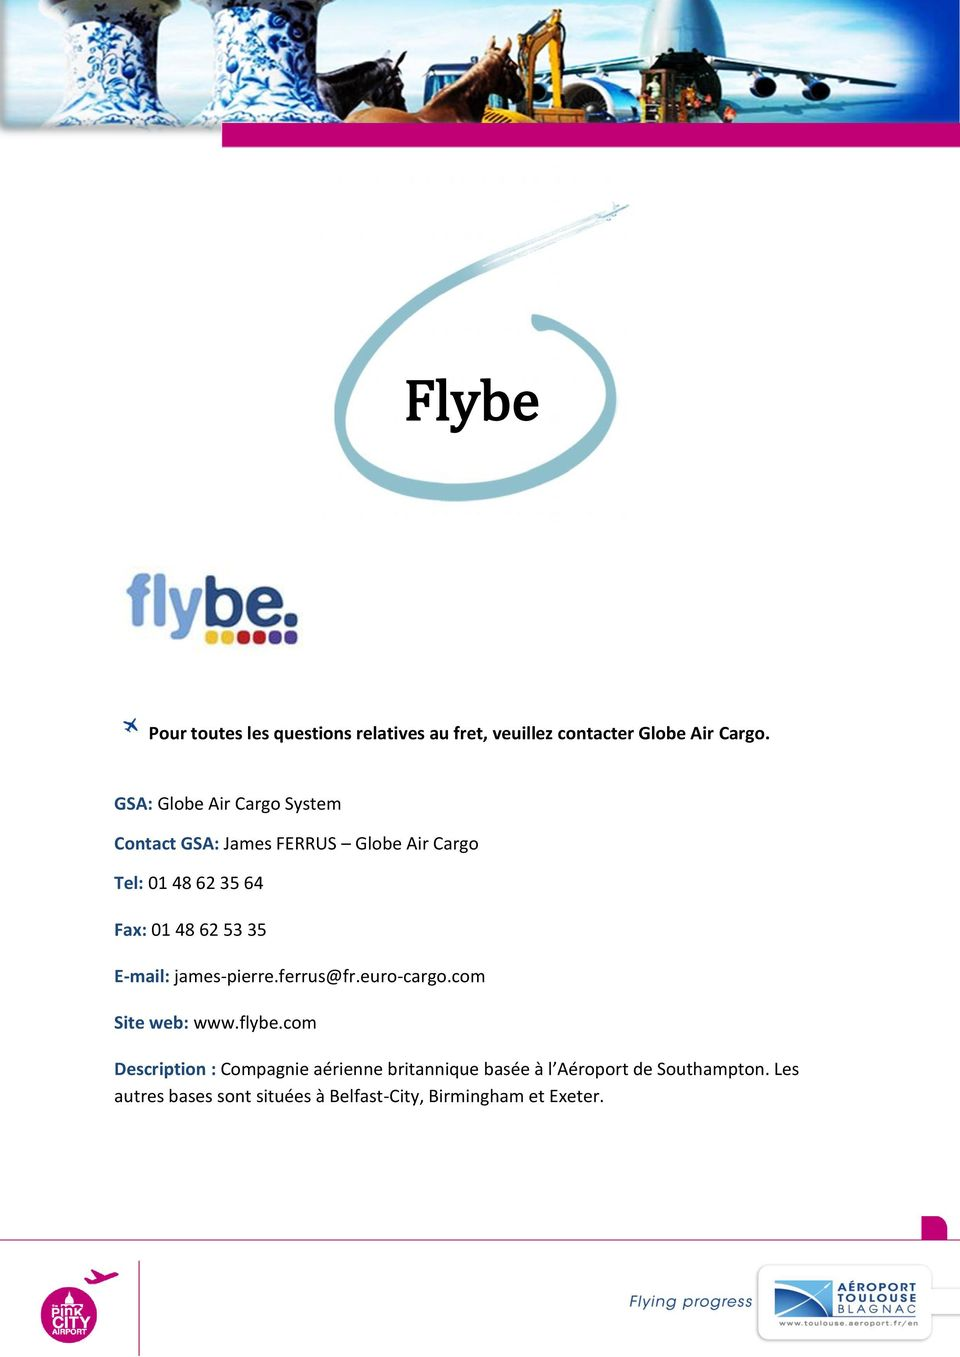 62 53 35 E-mail: james-pierre.ferrus@fr.euro-cargo.com Site web: www.flybe.